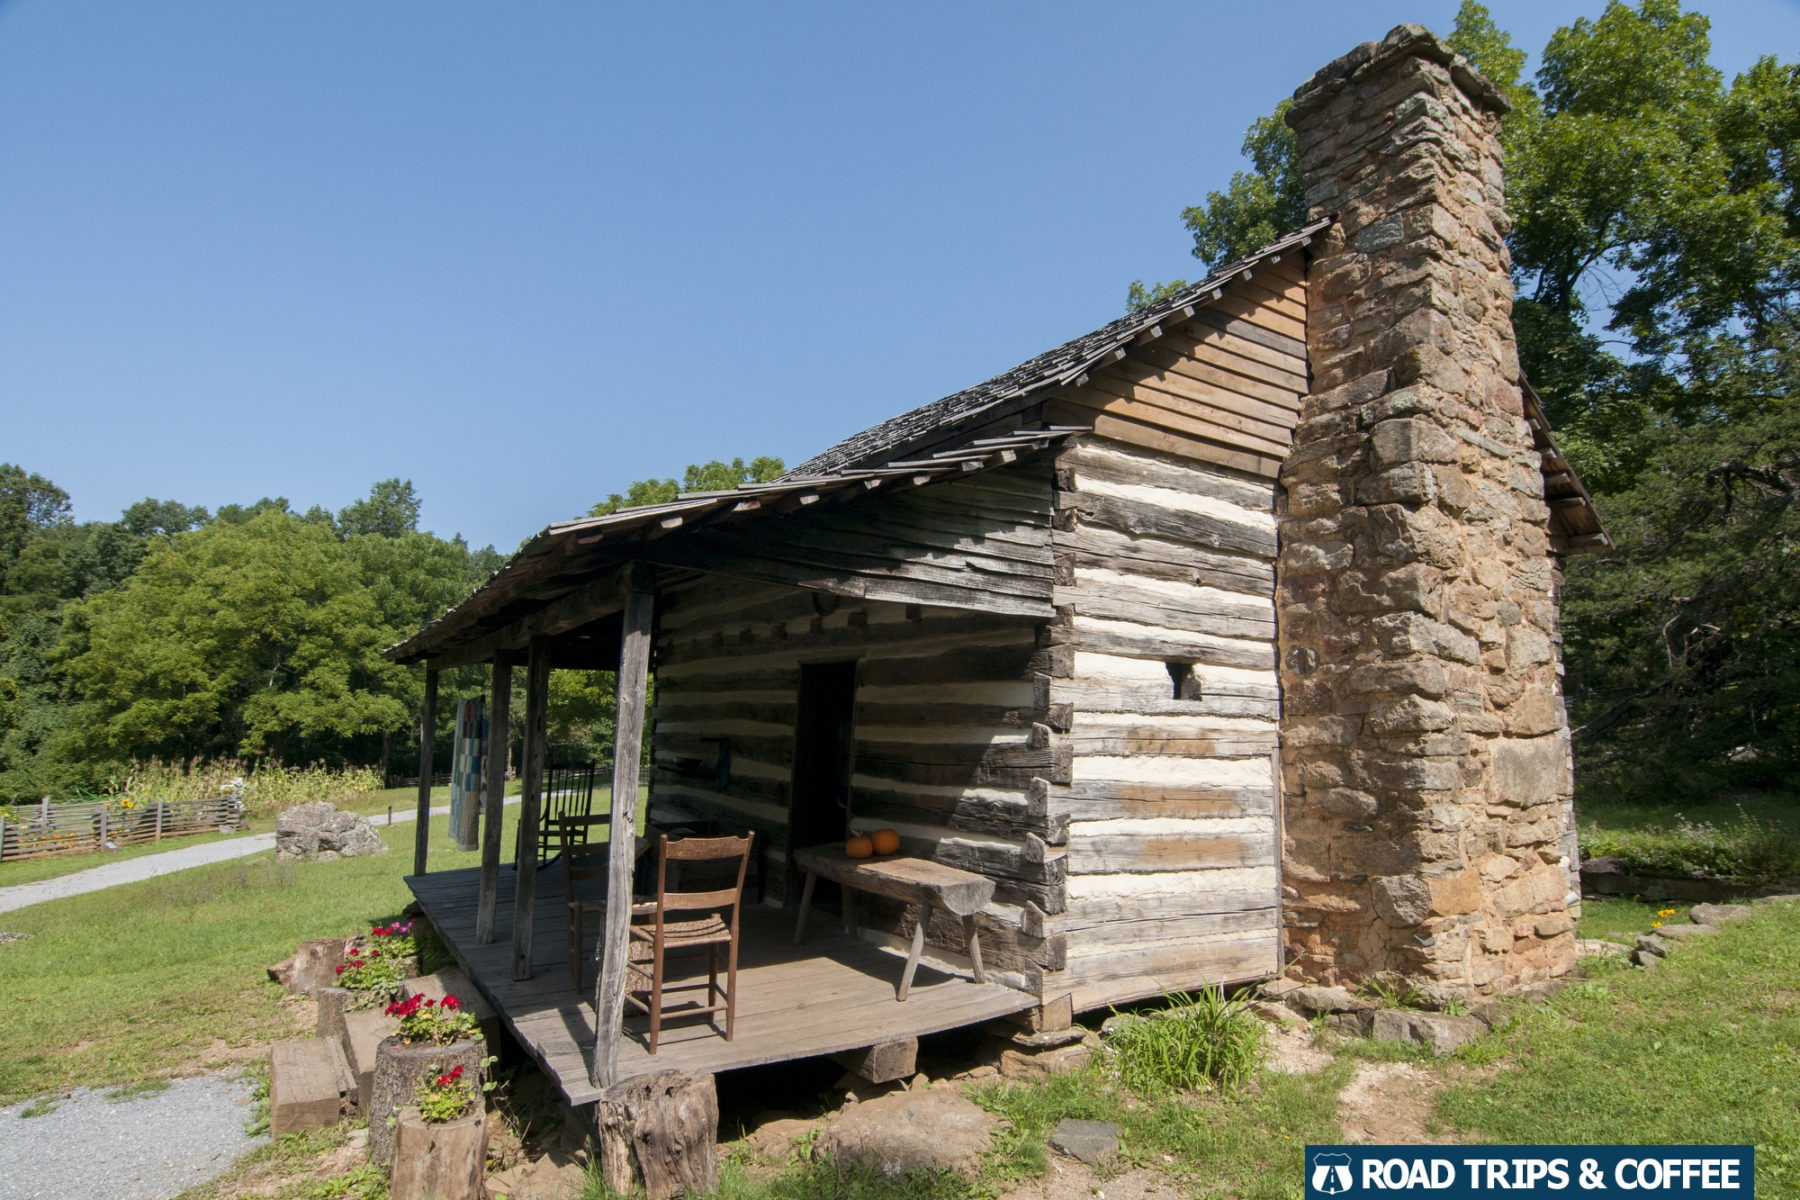 A rustic log cabin at Humpback Rocks Visitor Center on the Blue Ridge Parkway in Virginia